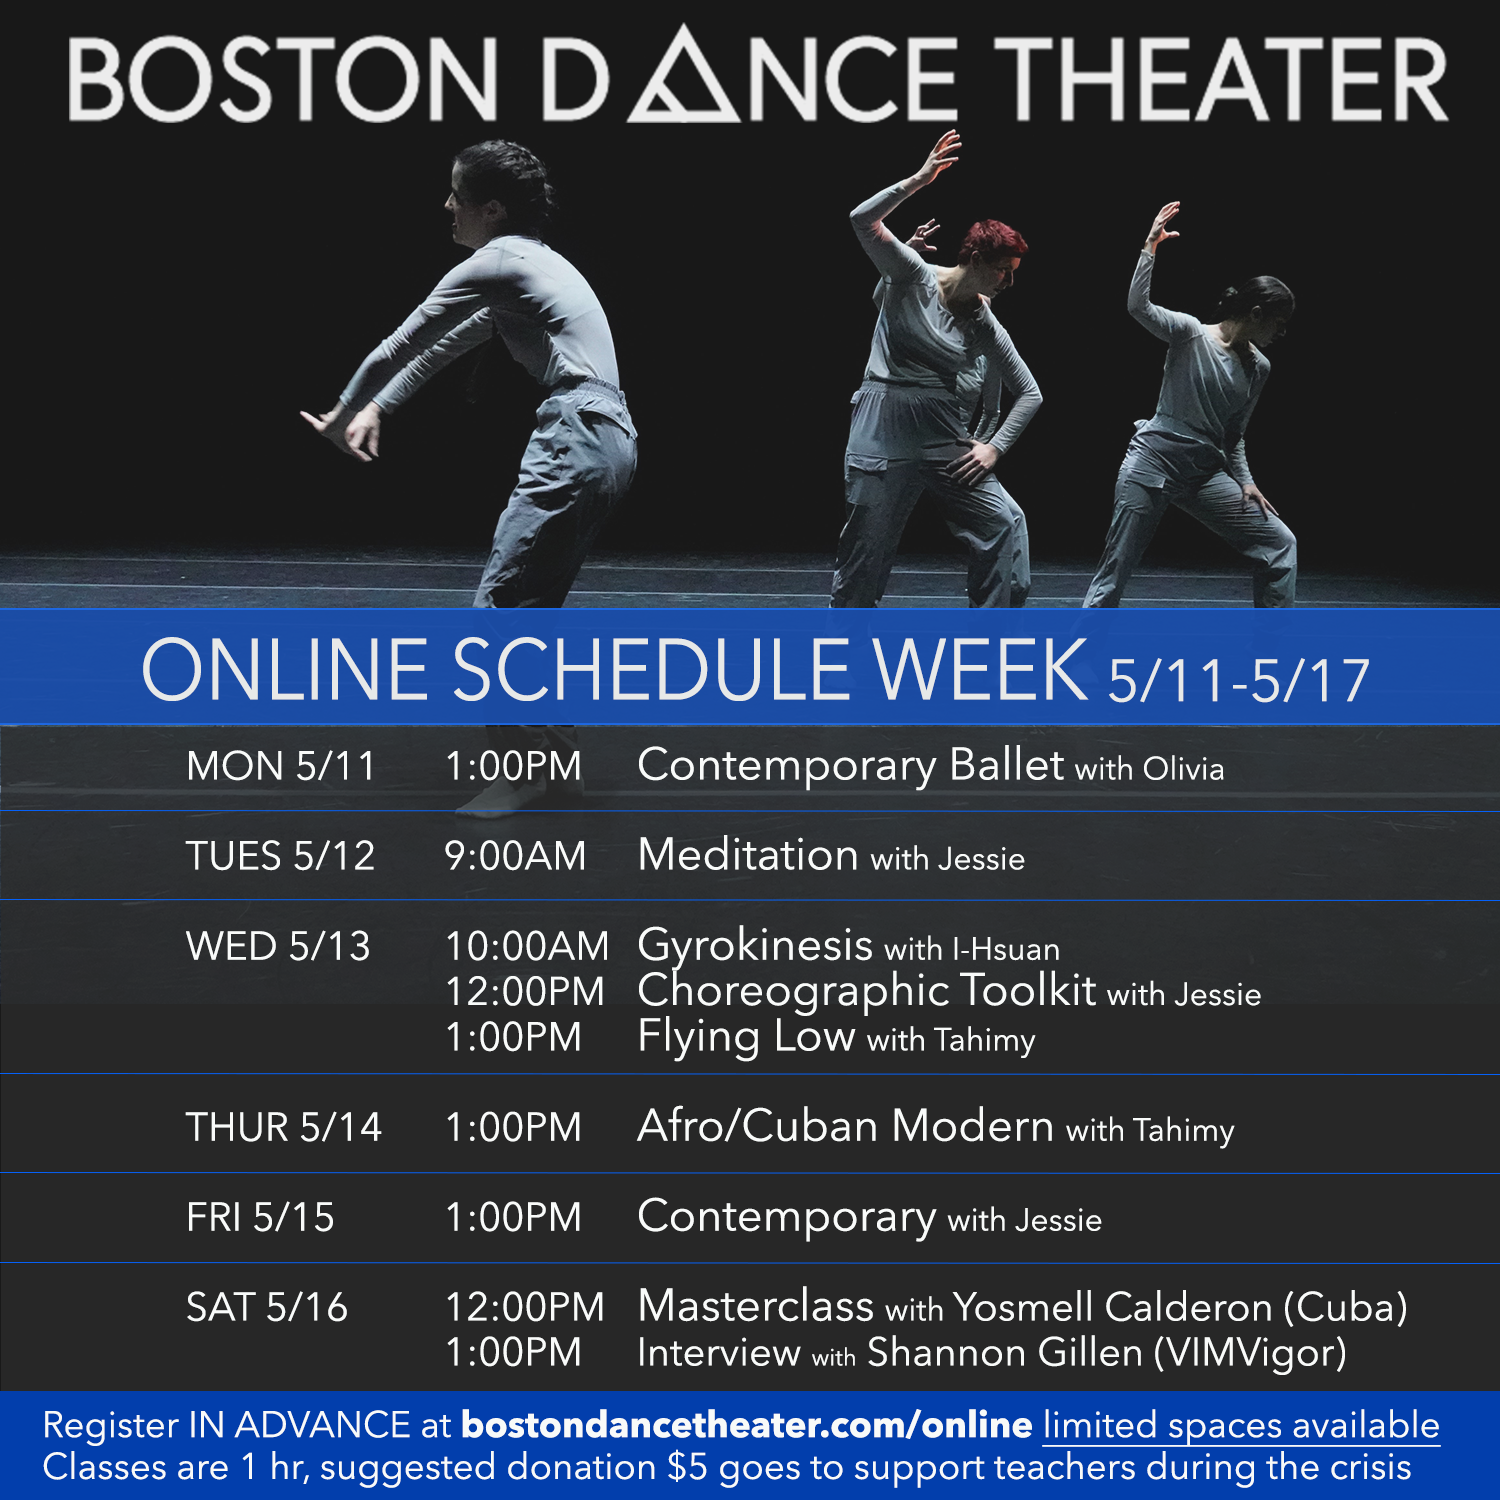 Masterclass with Yosmell Calderon (Cuba), hosted by Boston Dance Theater